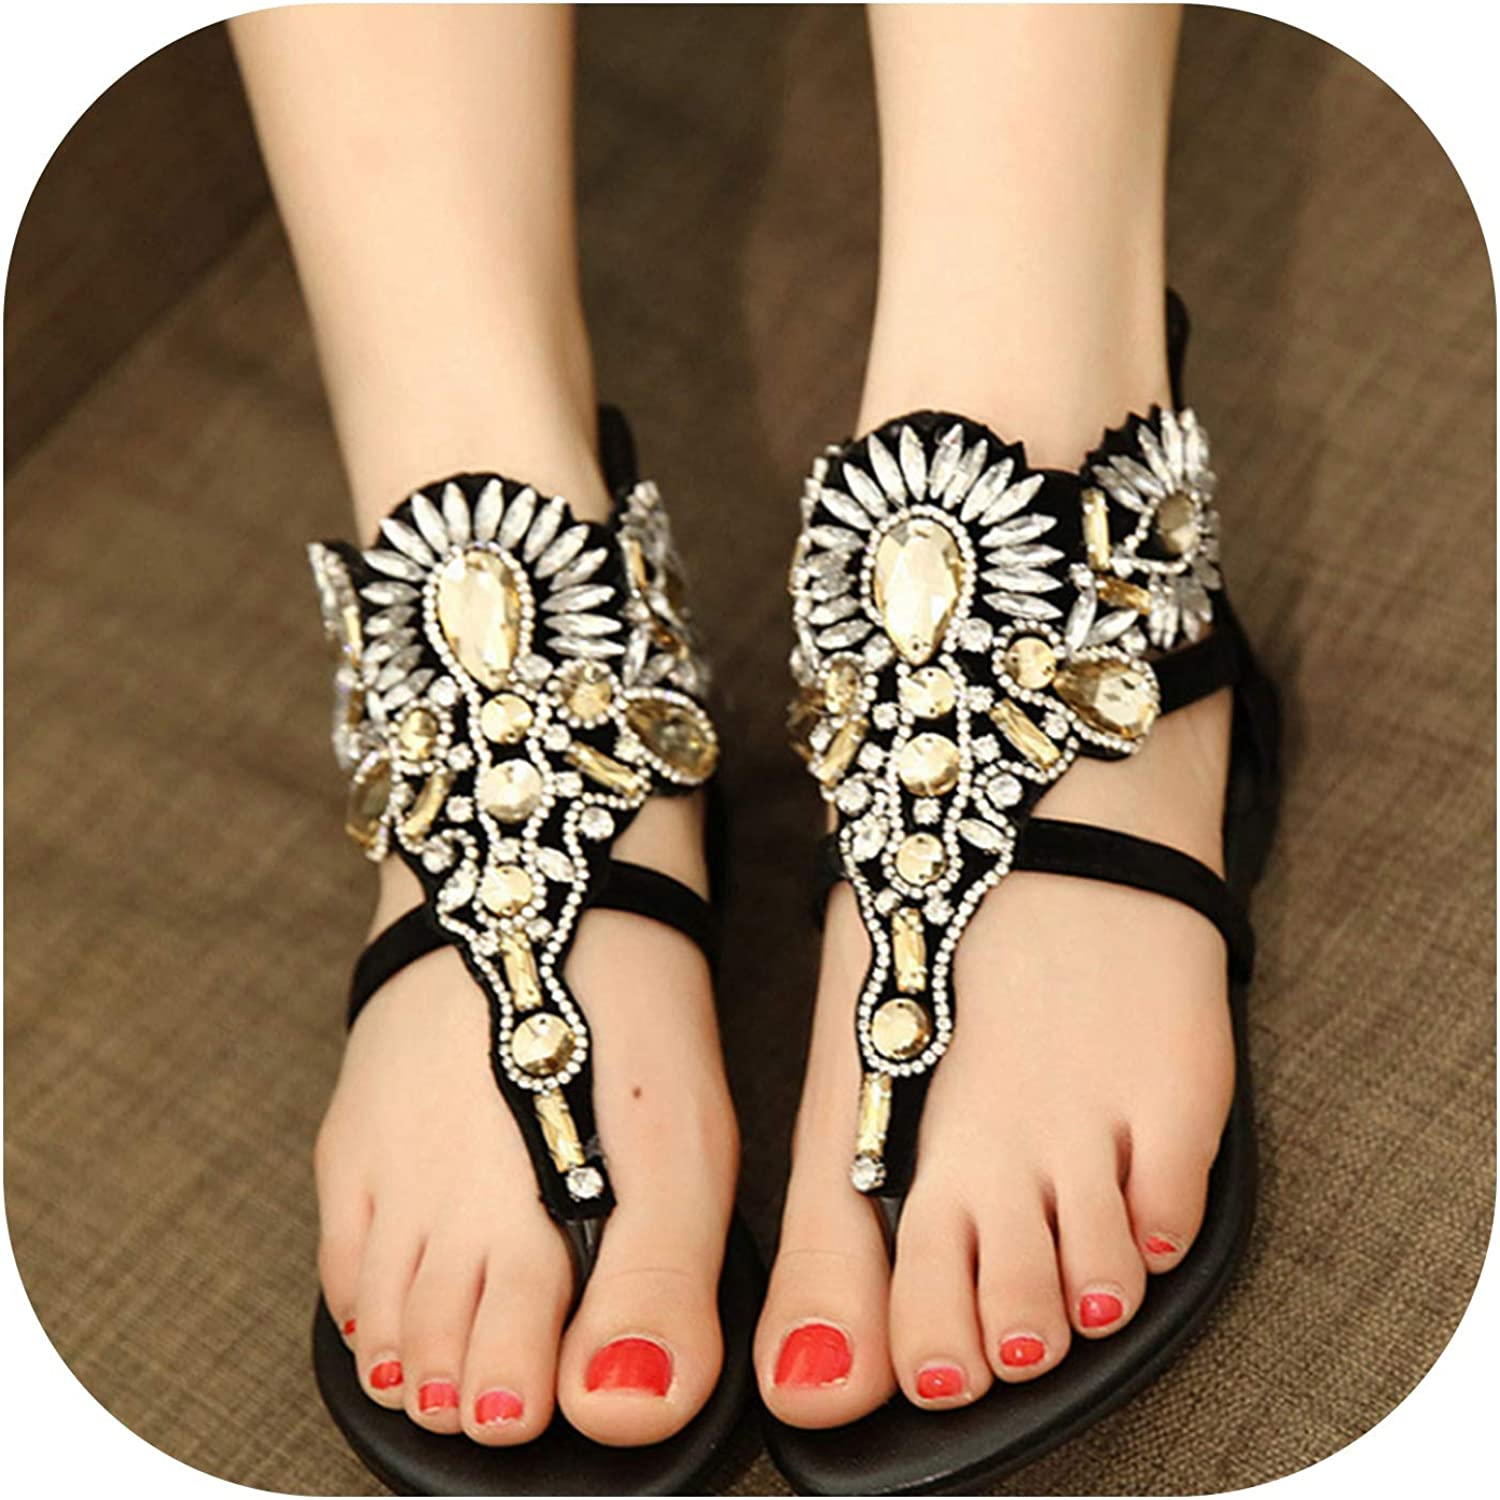 Heat-Tracing Women Crystal Gladiator Sandals Summer Flip Flops Casual shoes Women Slip On Rhinestone shoes